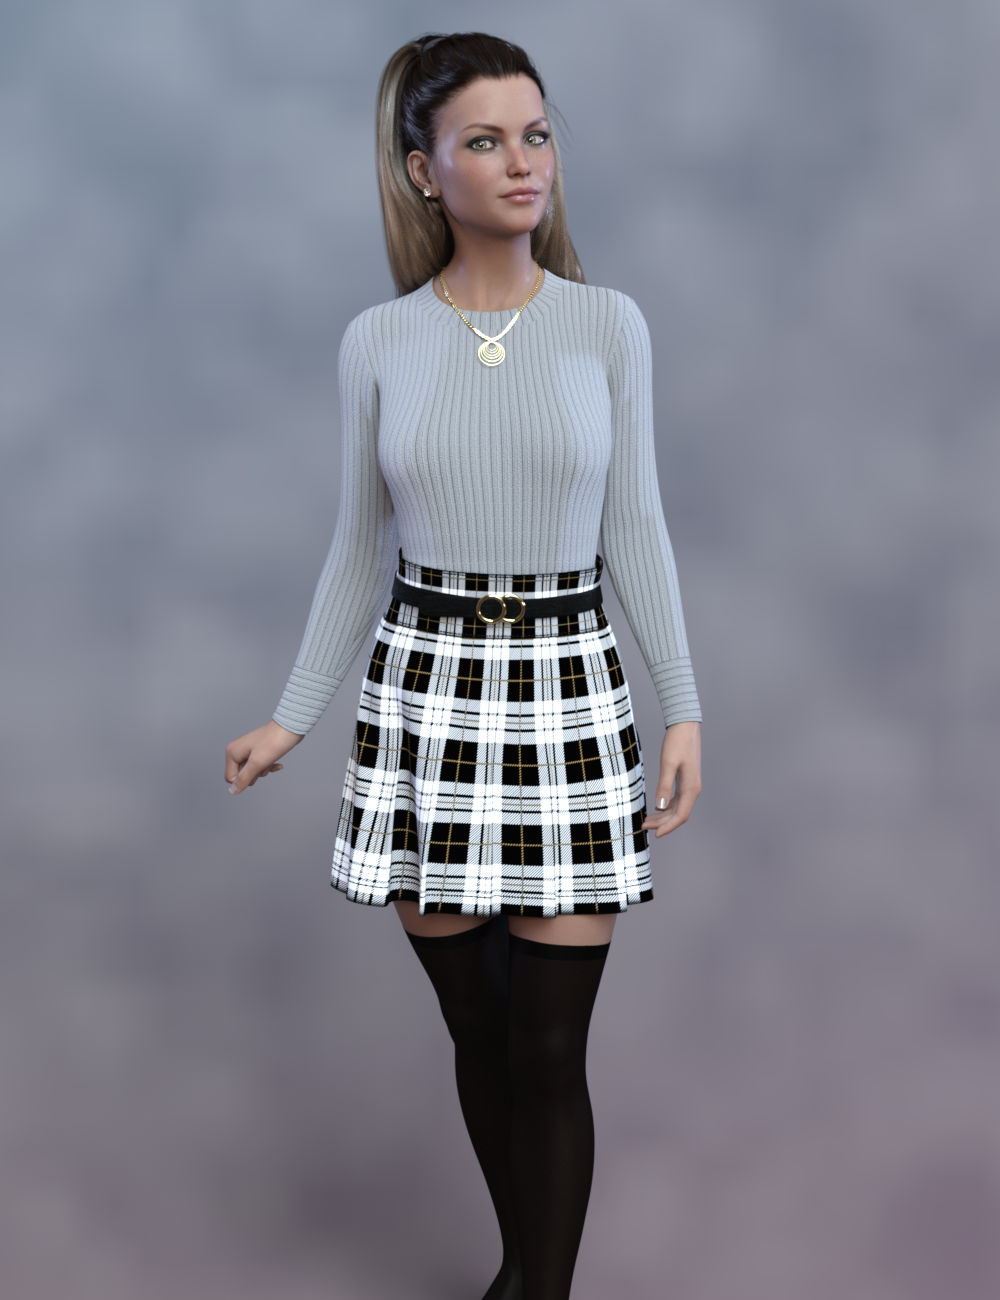 dForce Cecille Outfit for Genesis 8 and 8.1 Females by: WildDesigns, 3D Models by Daz 3D